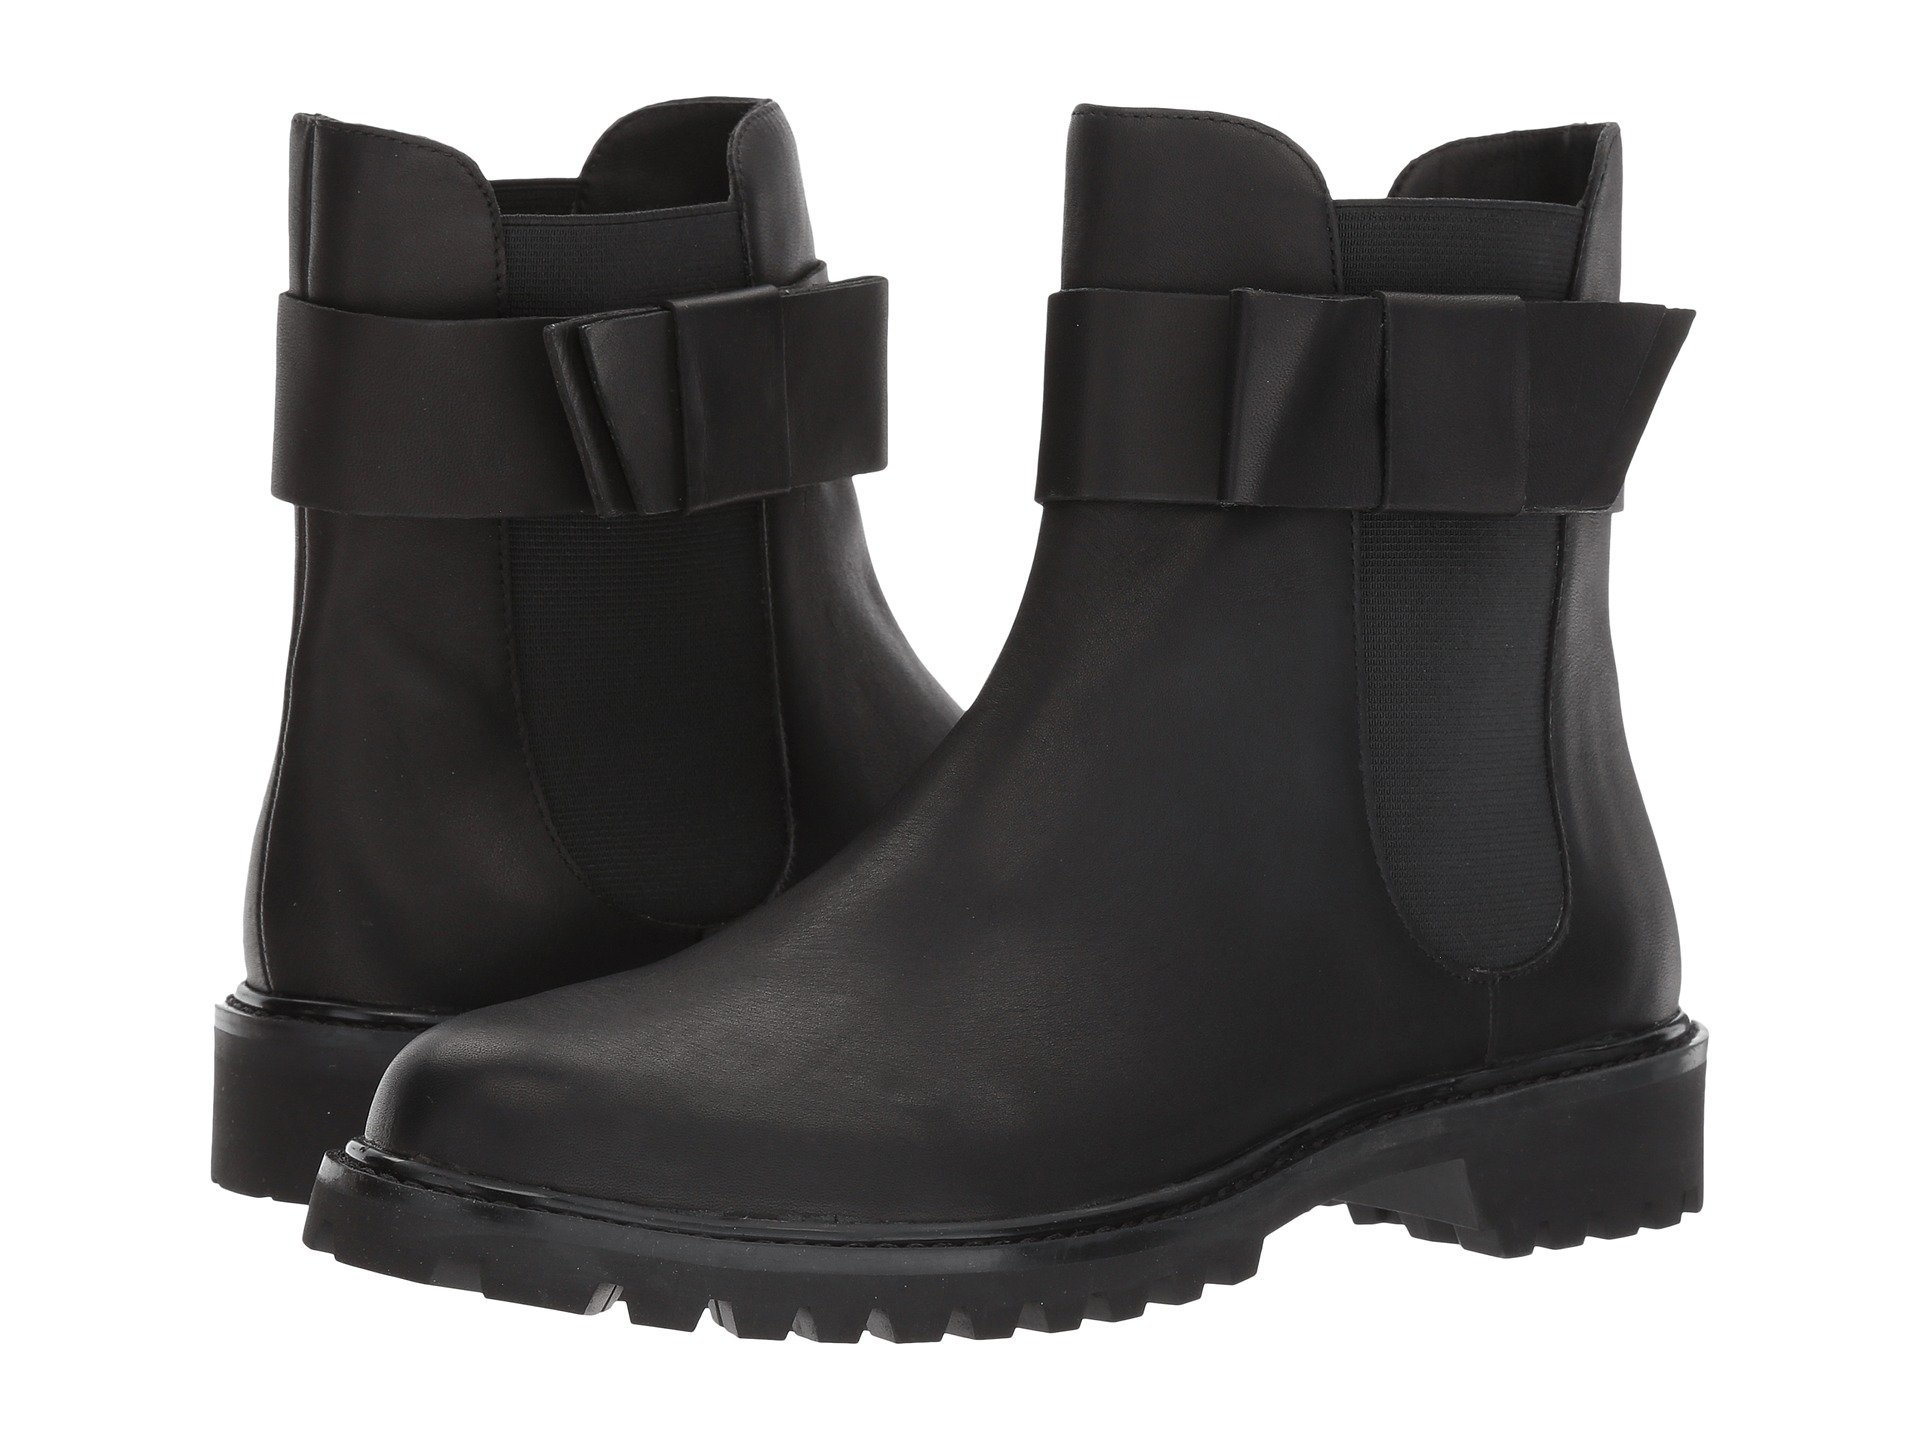 Hollie Leather Chelsea Boots in Black Calf Leather